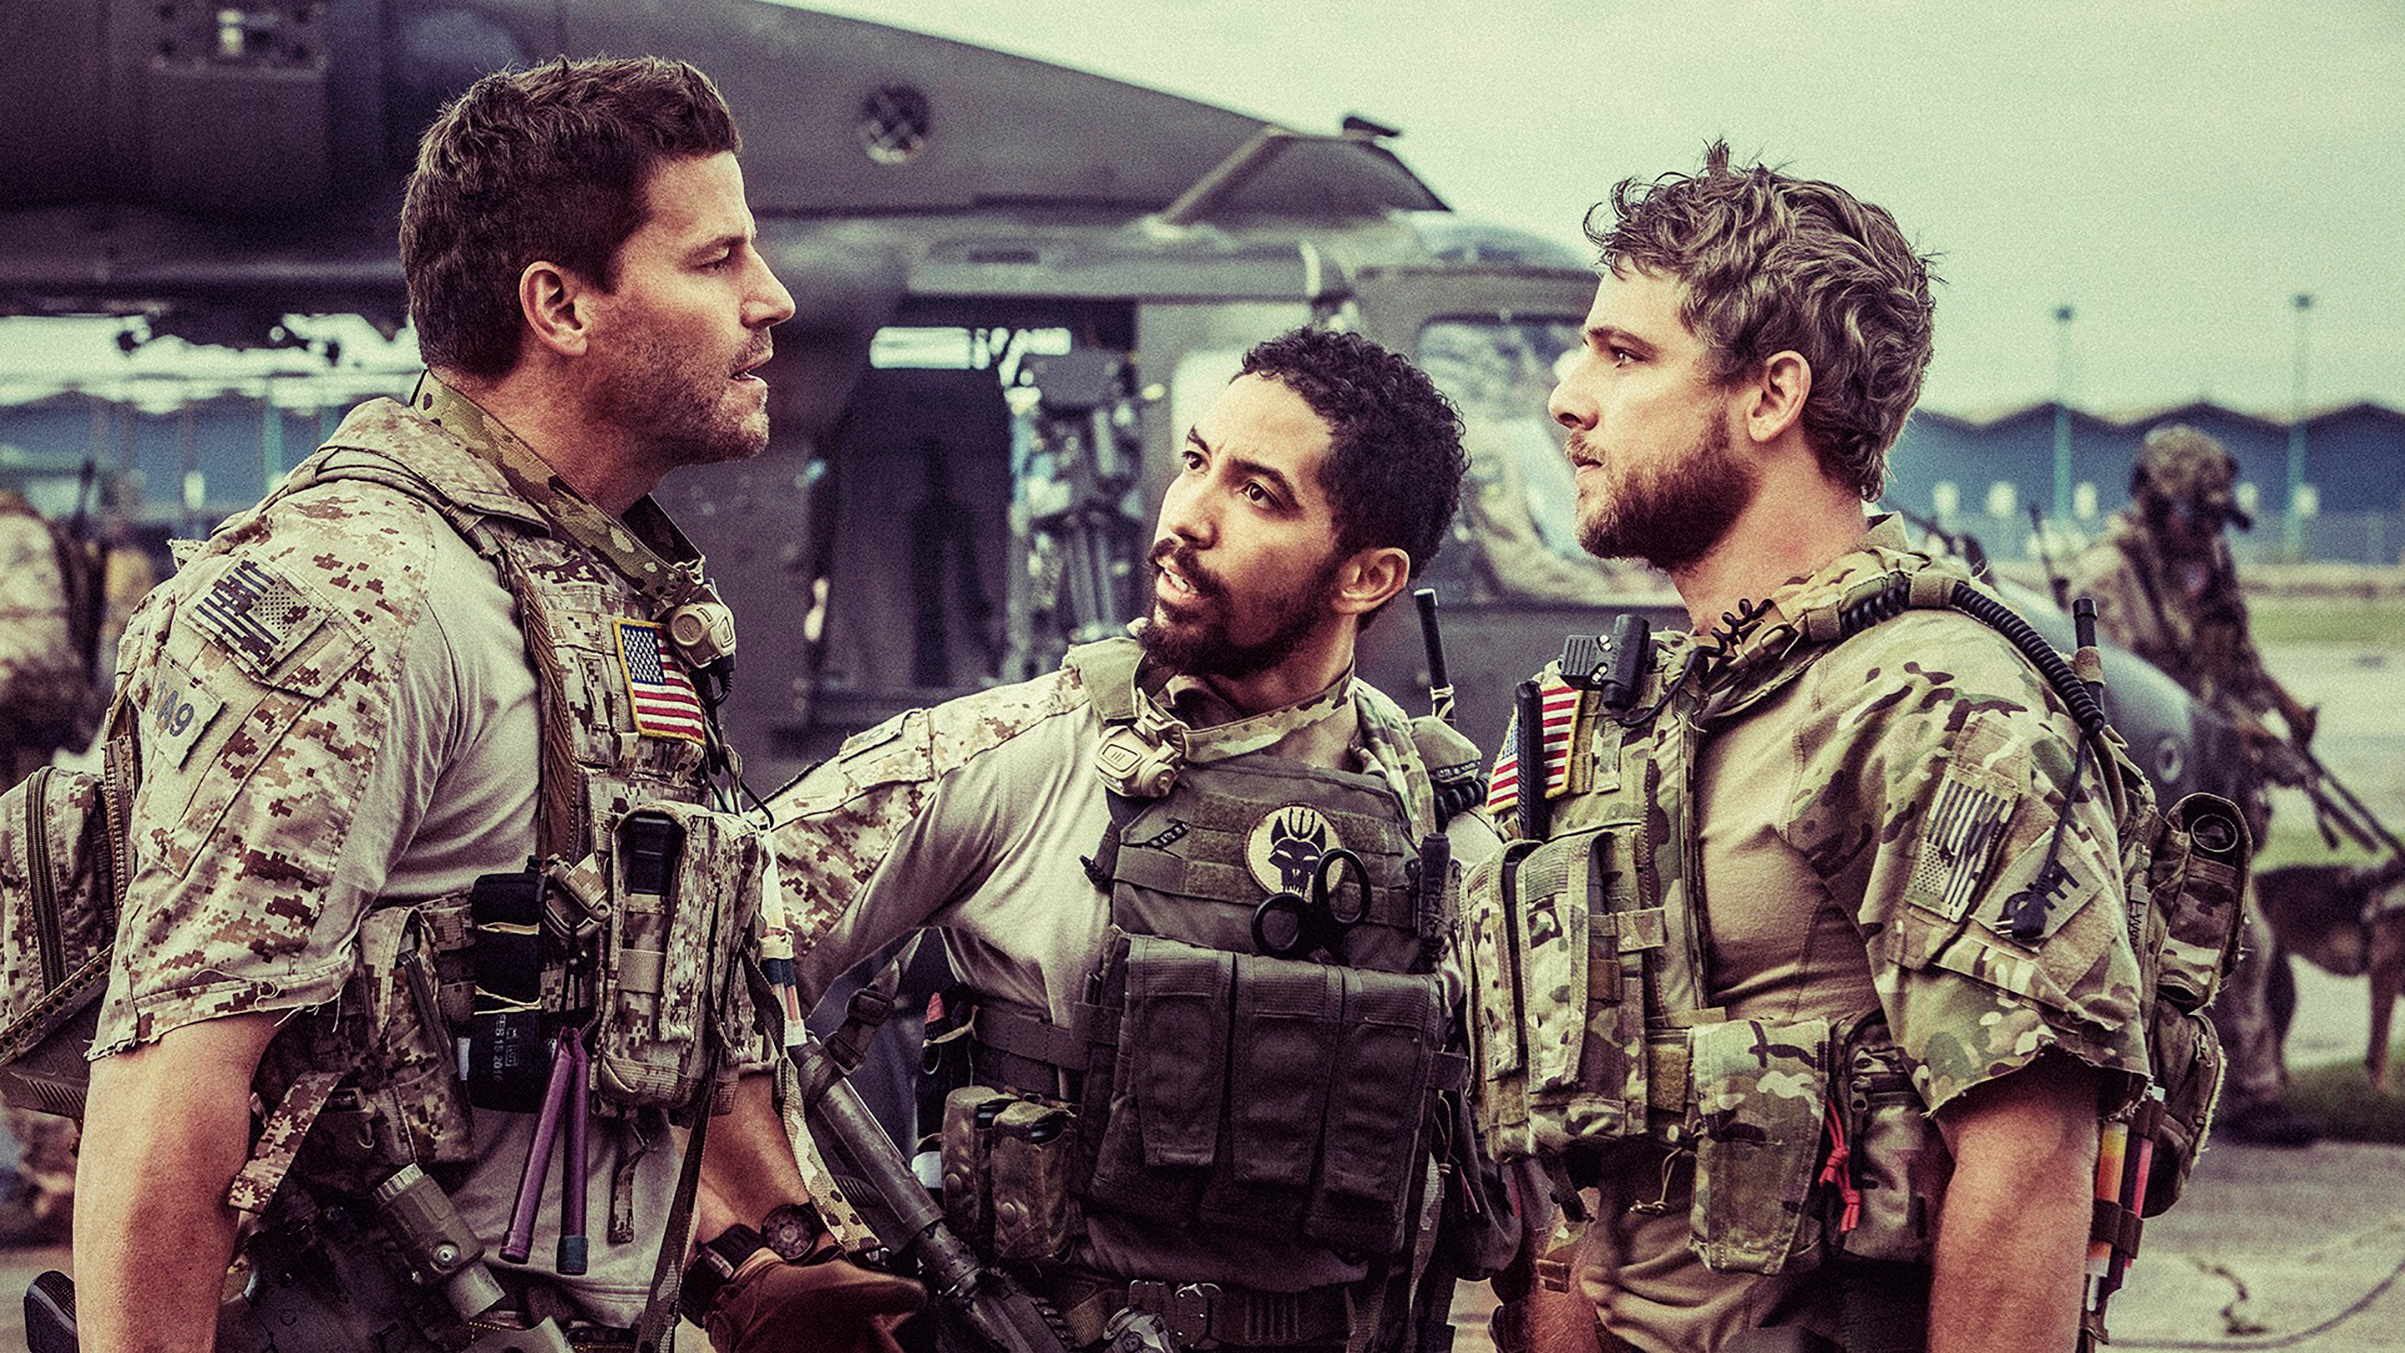 Boreanaz, left, and fellow members of his SEAL team